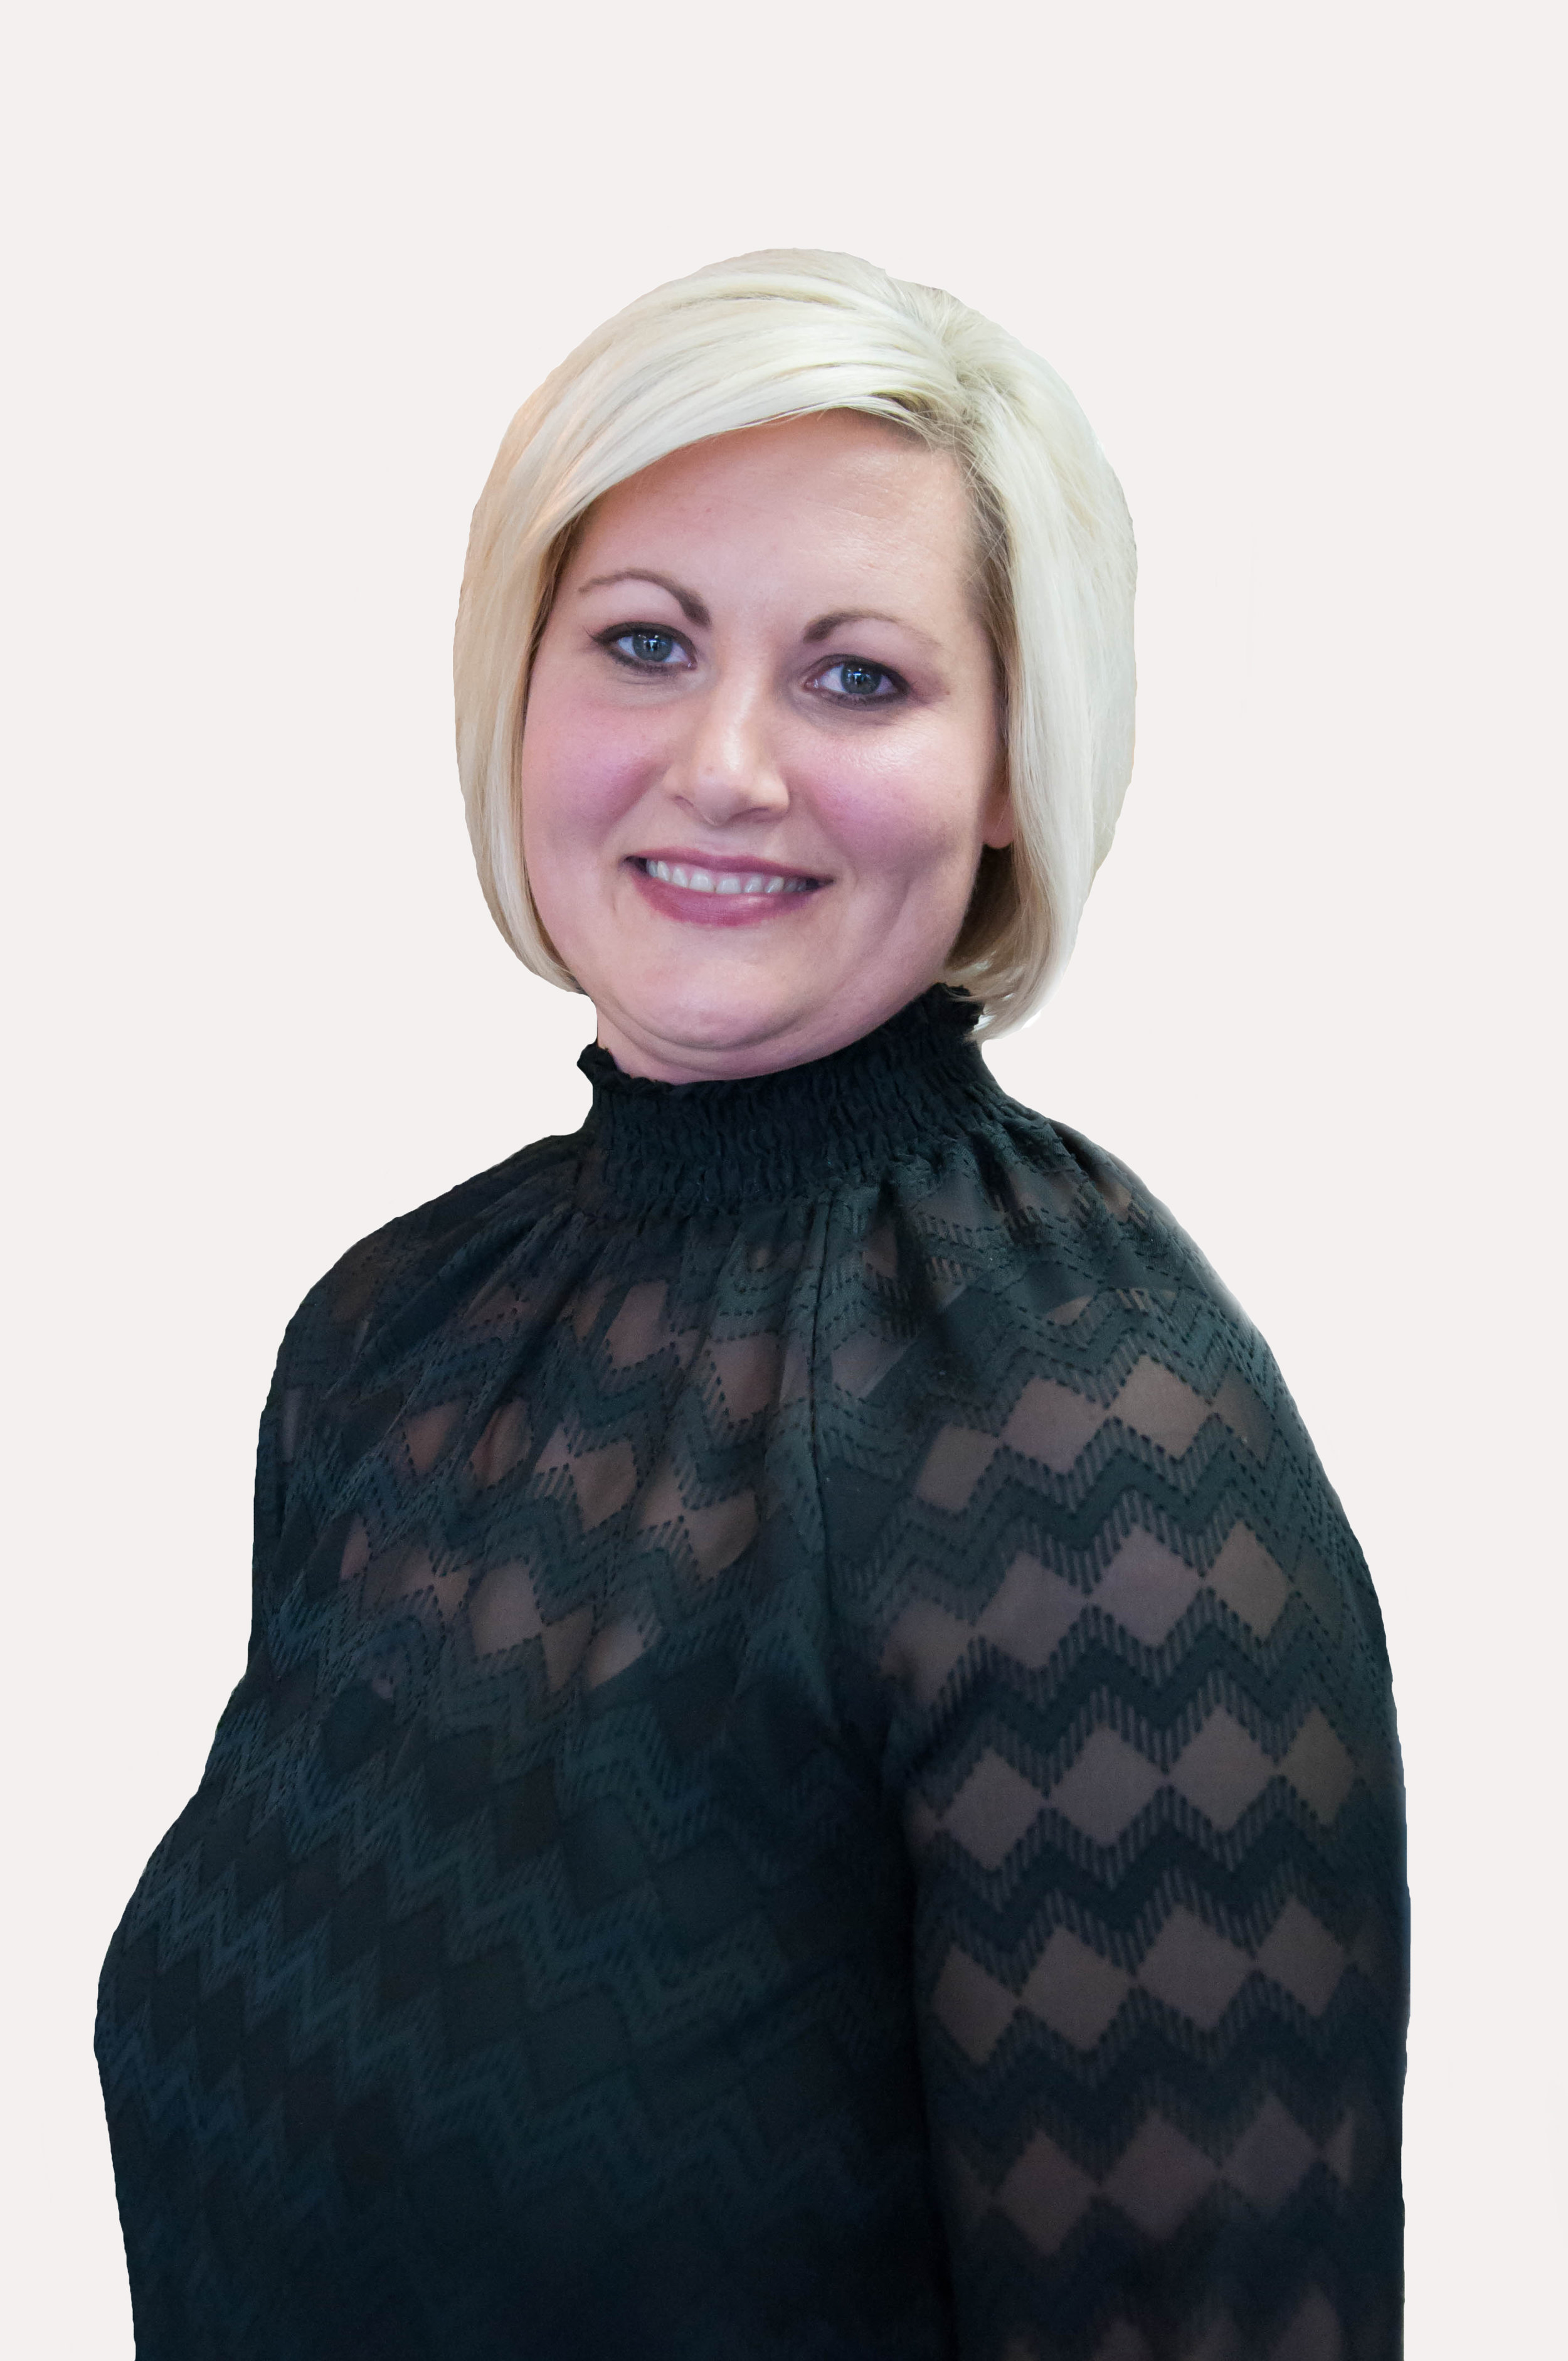 Lillie Nielsen - Lillie is excited to be a part of the Kellie & Co team. She recently moved to Utah after spending the last 15 years doing hair in Athens Georgia. She attended D&L Academy of Hair Design in Twin Falls Idaho graduating in 2002. She was also able to expand her training with some of the industries best educators including Vidal Sassoon and Bumble & Bumble in NYC. Her many years of experience has helped her develop into a hairstylist with a great eye for finding the right color and cut for any face shape. She has a passion for hair and for helping her clients fill both beautiful inside and out.See Lillie's Work Here!